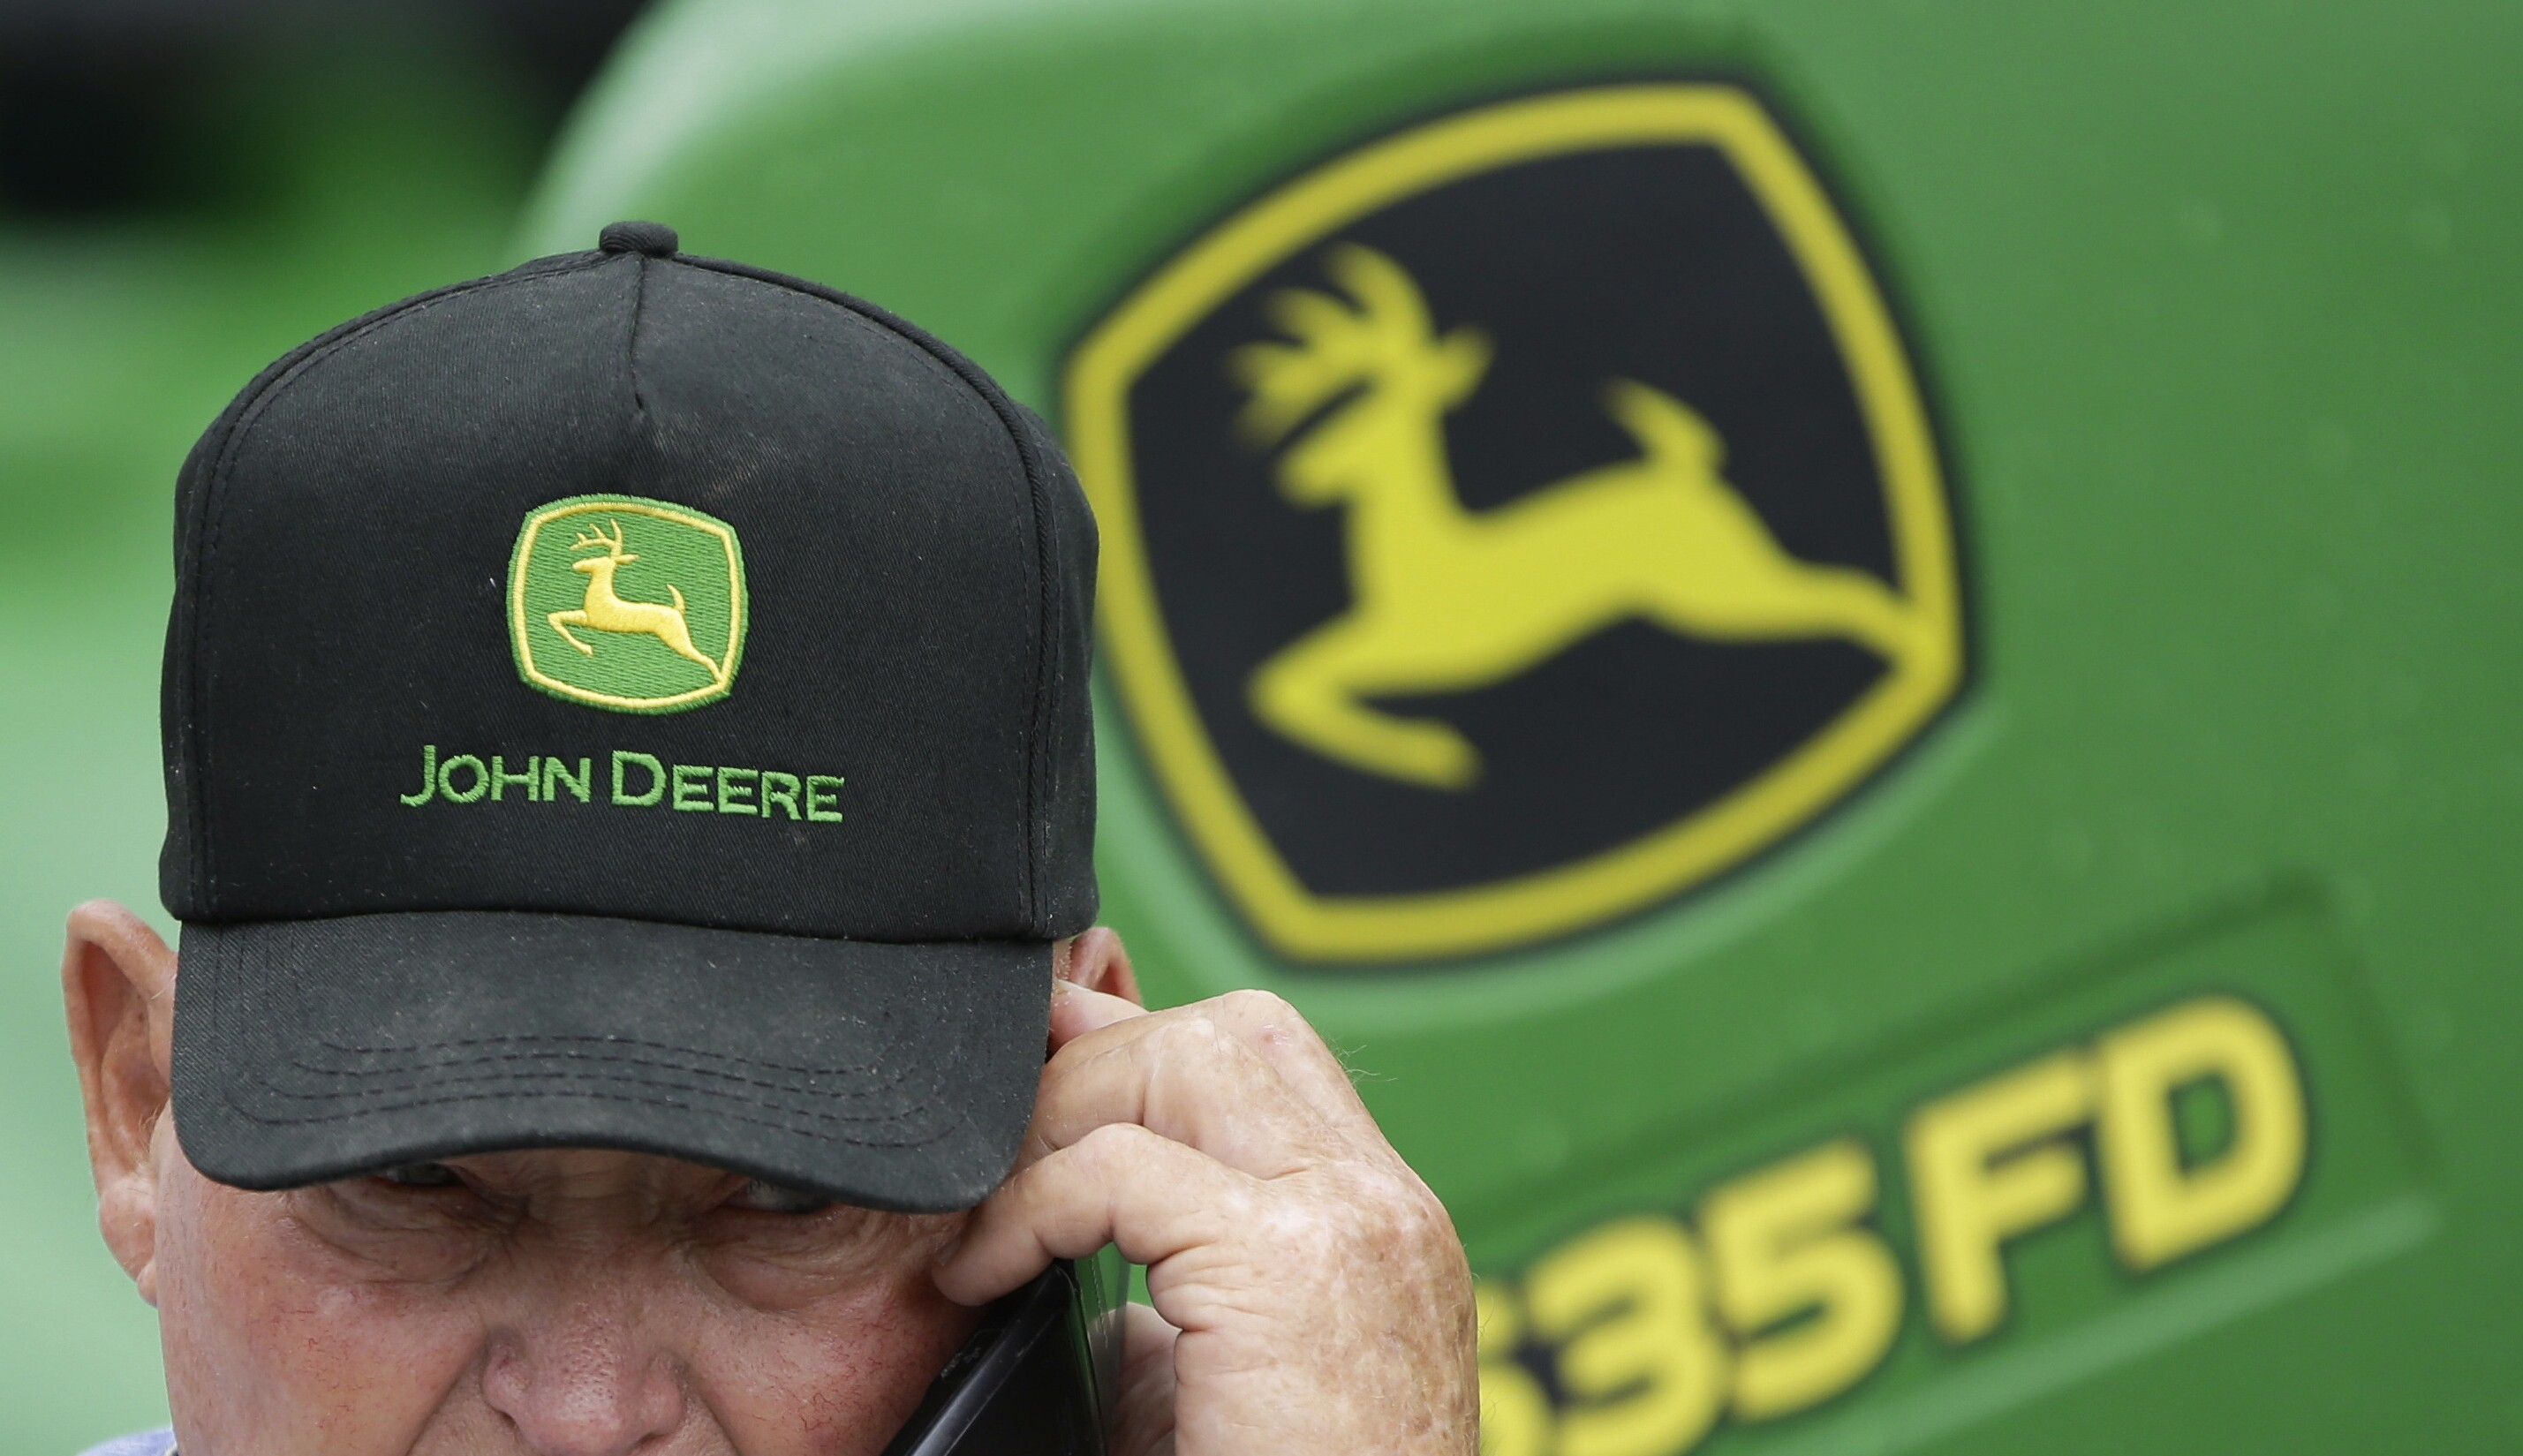 Deere finds steady demand from US farmers despite tariff woes